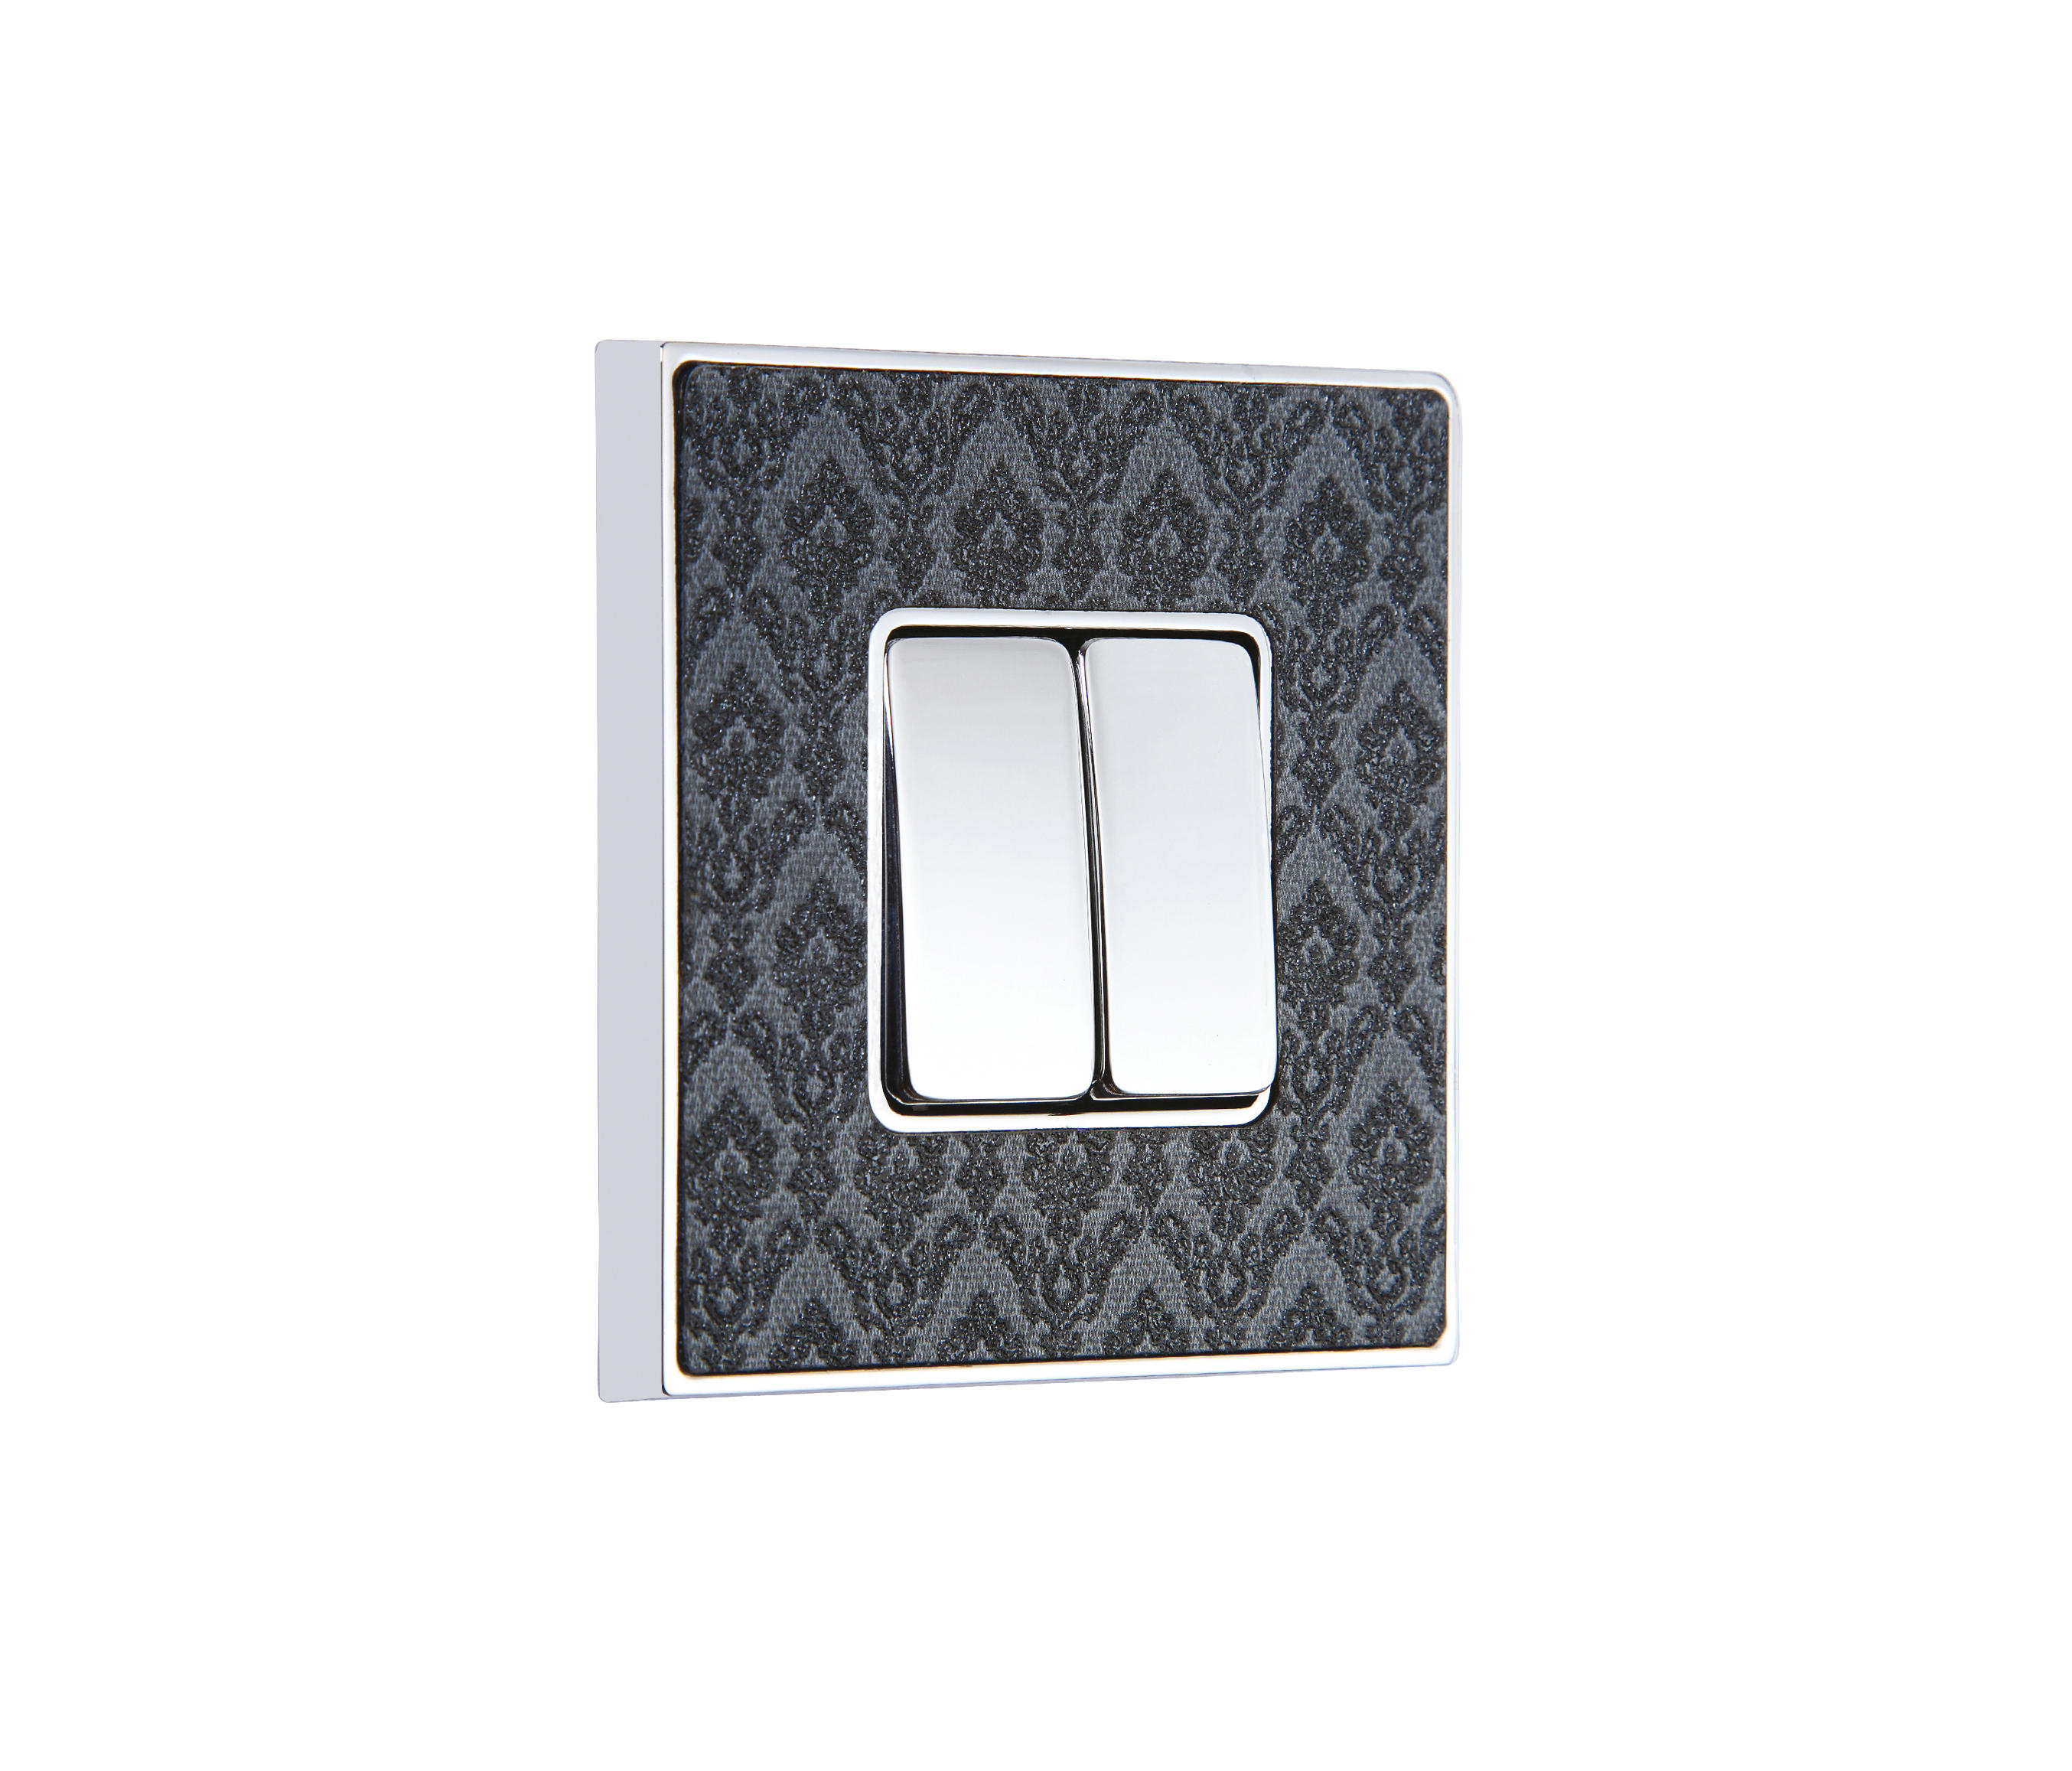 VINTAGE TAPESTRY SWITCH - Two-way switches from FEDE | Architonic